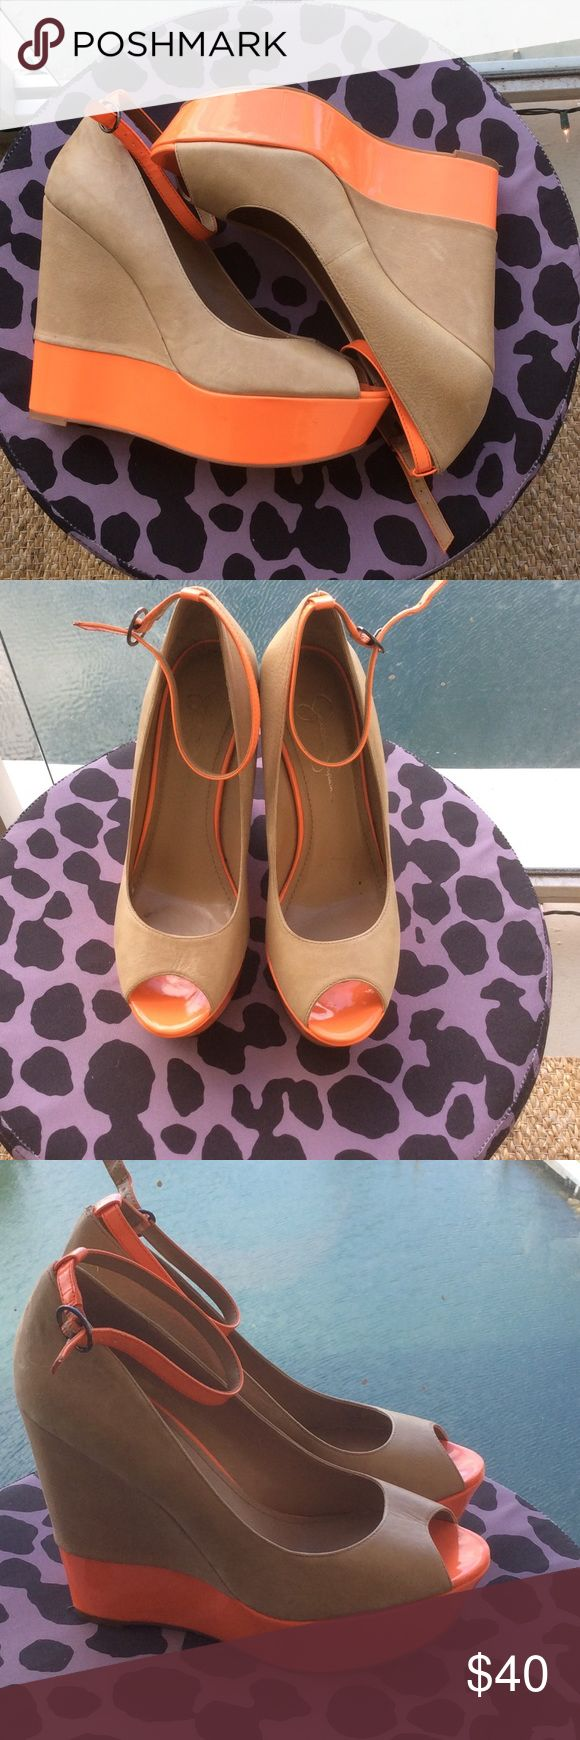 ✨Jessica Simpson Wedges✨ Neutral wedges with a pop of orange color! These shoes are in excellent condition and have only been worn once! Jessica Simpson Shoes Wedges